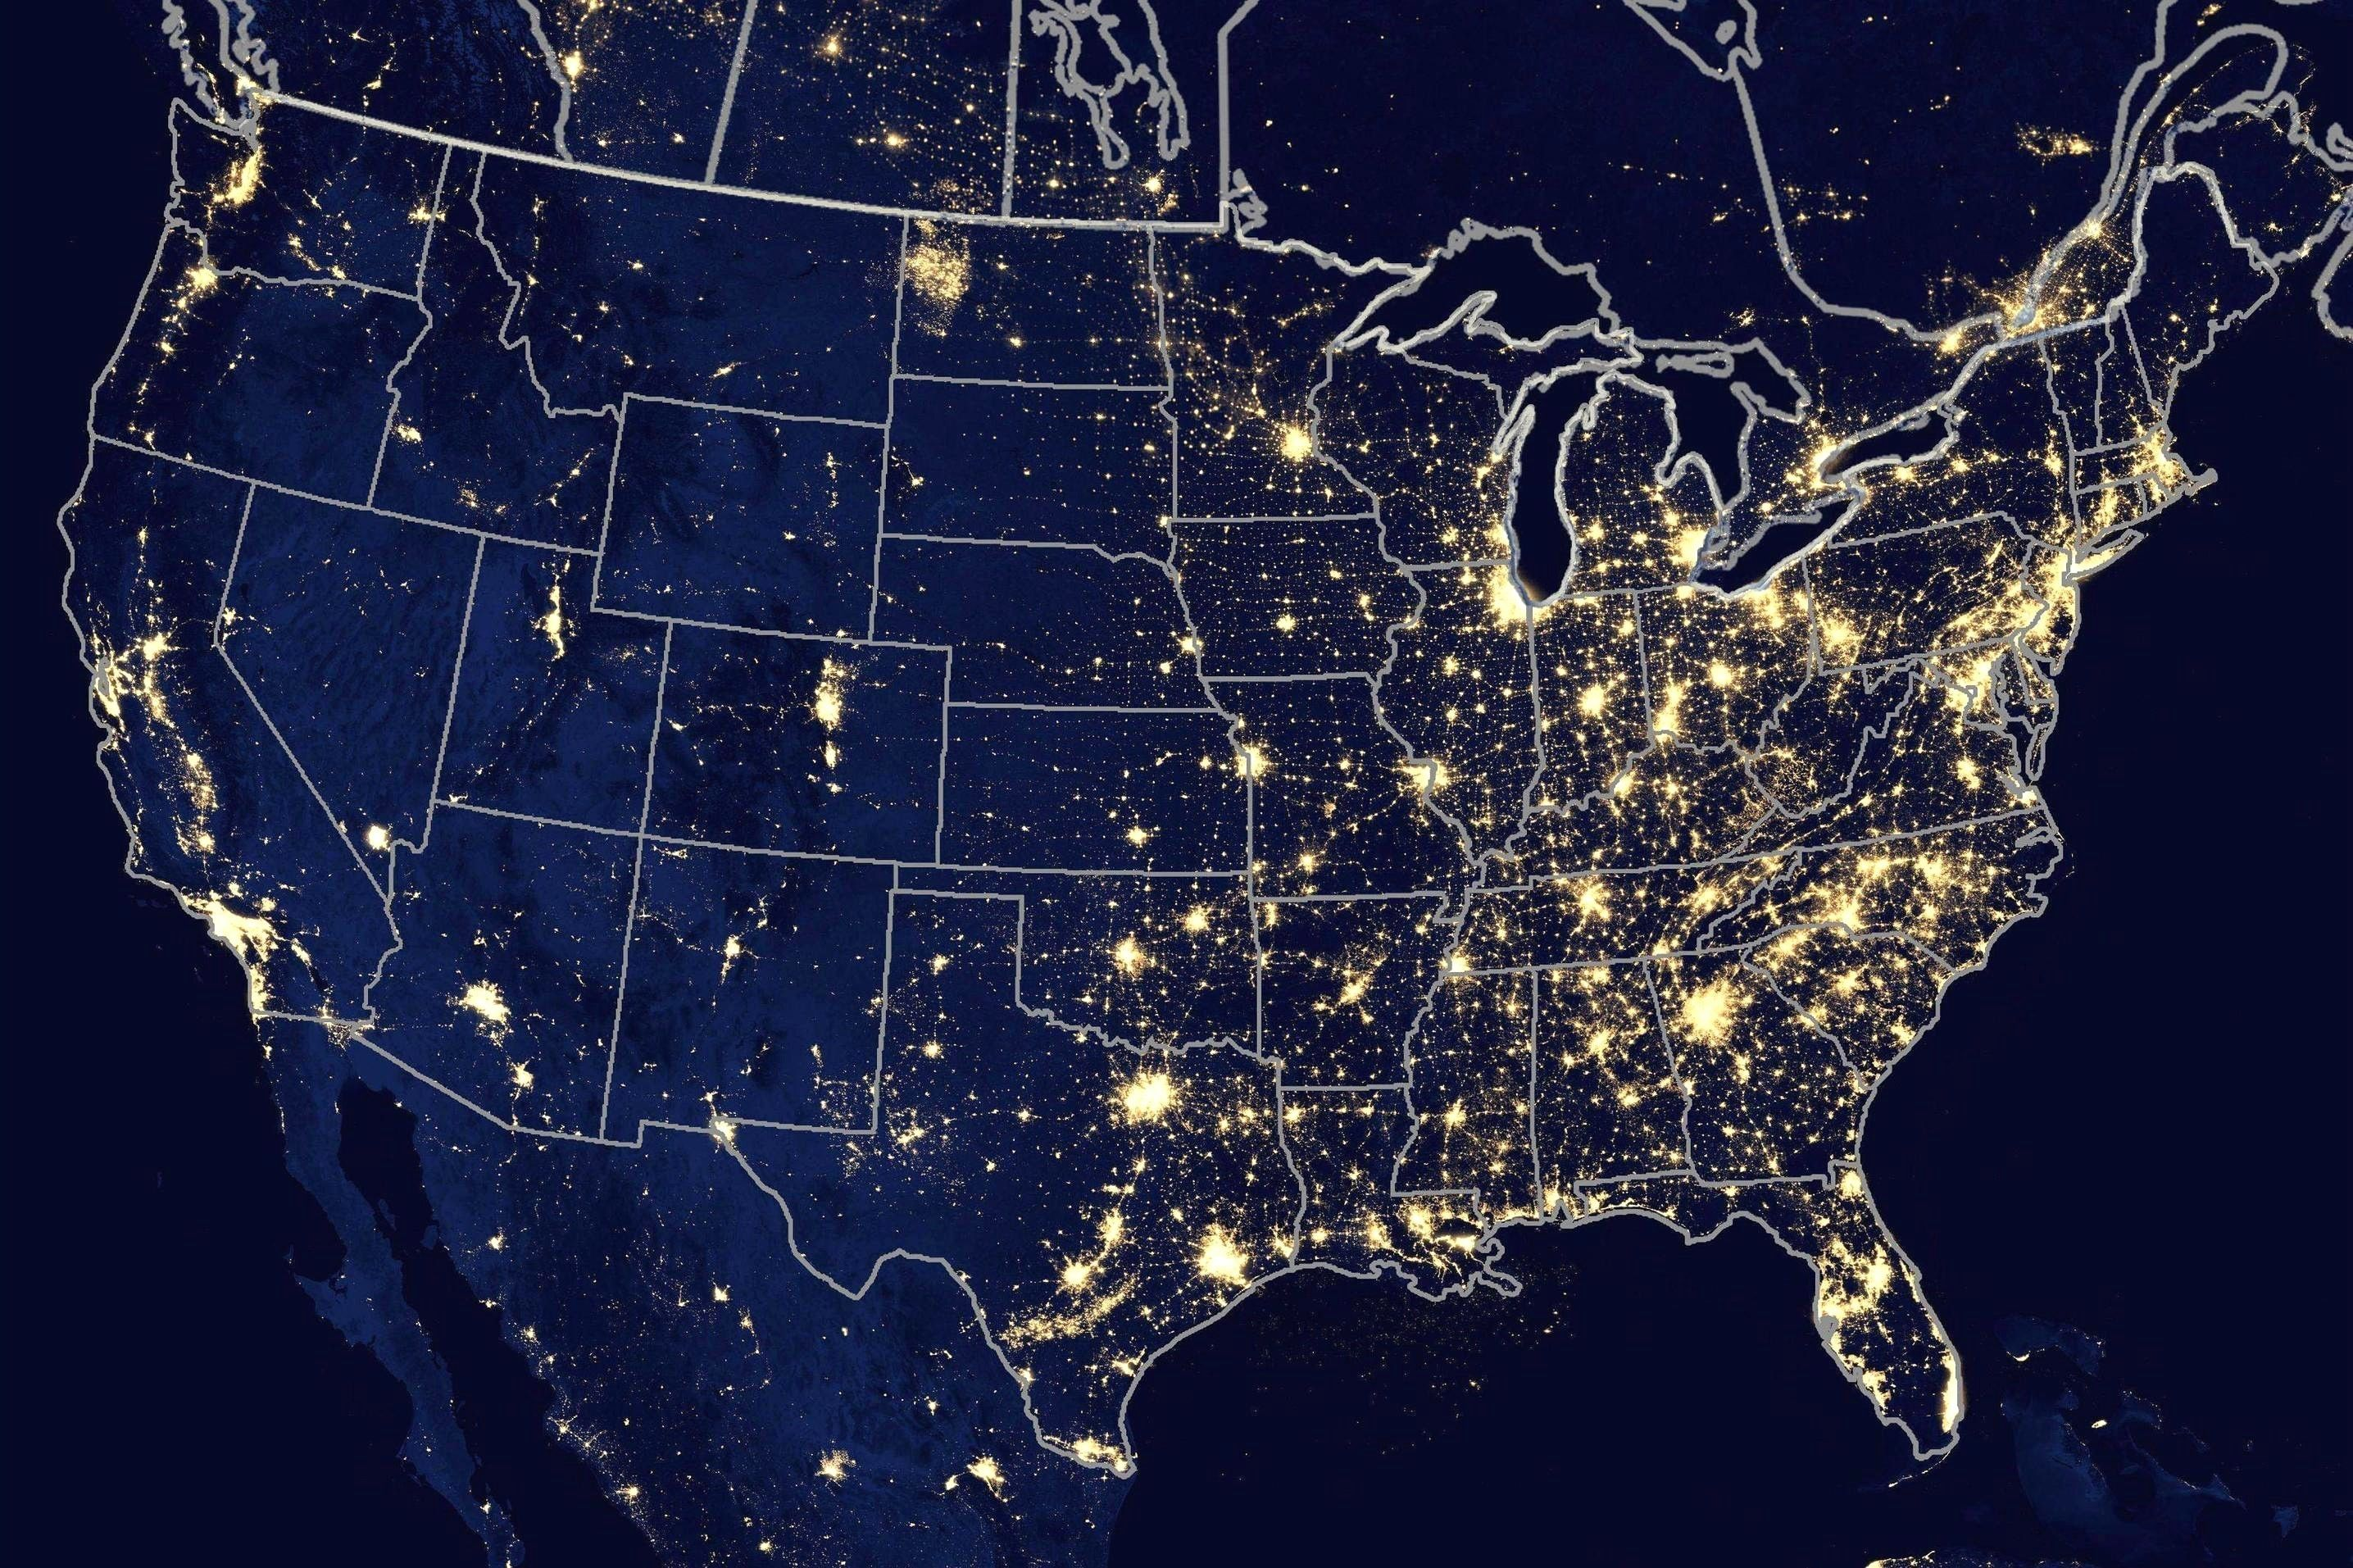 Us Night Light Map Light pollution Contiguous United States | Light pollution, Light